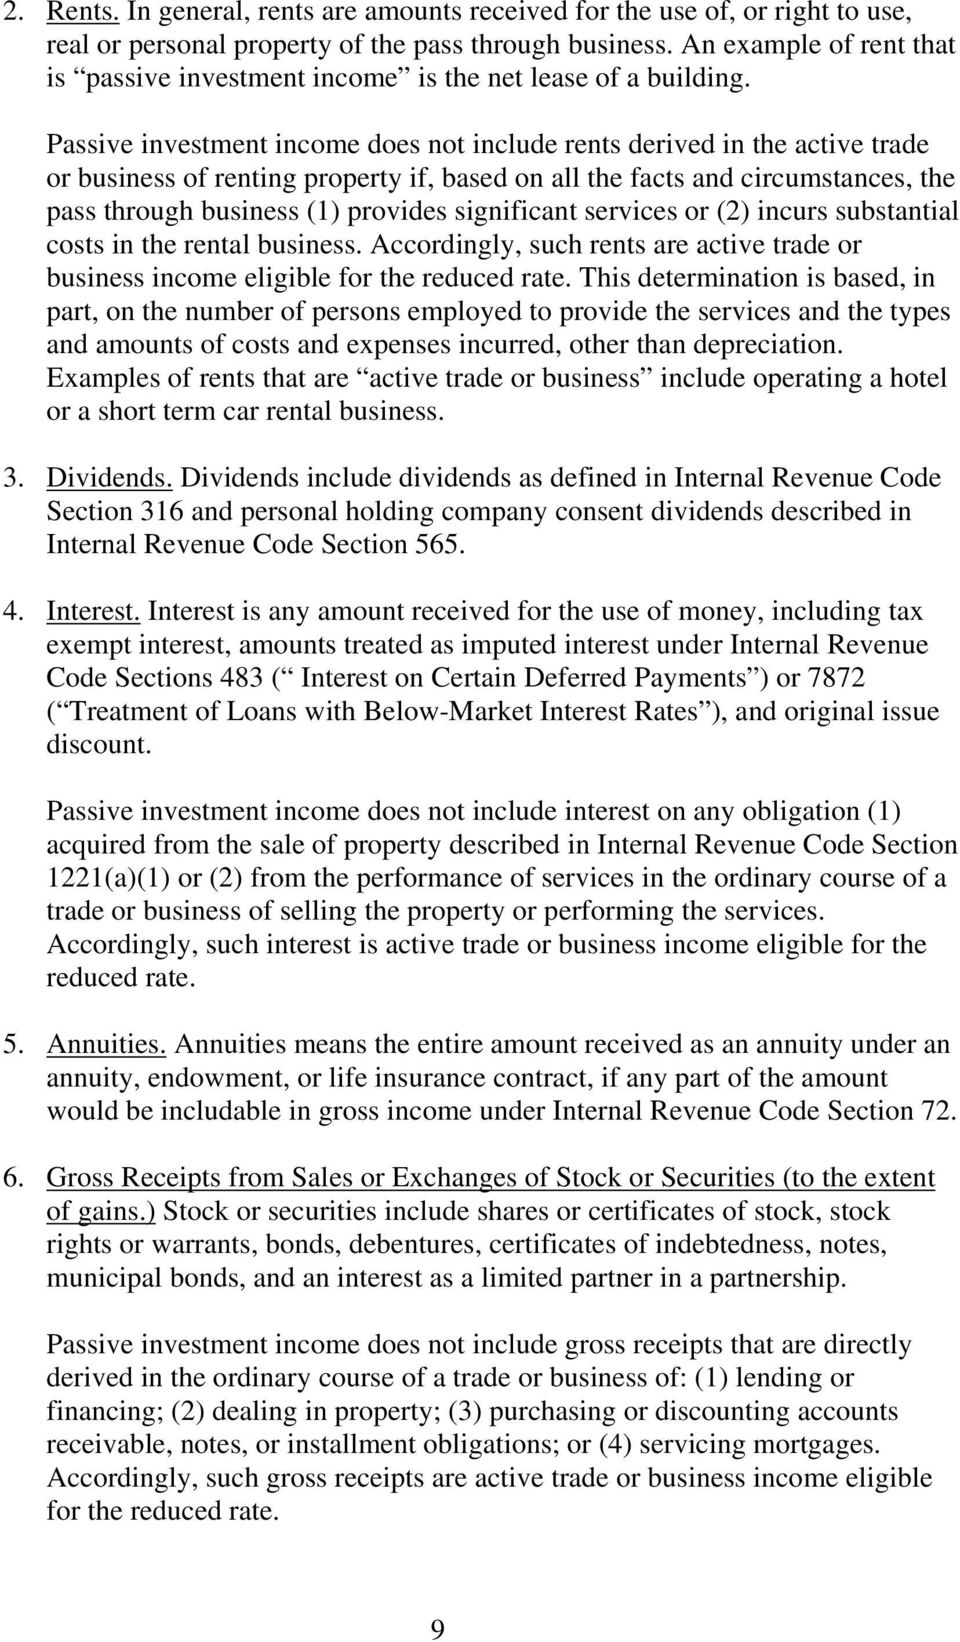 Passive investment income does not include rents derived in the active trade or business of renting property if, based on all the facts and circumstances, the pass through business (1) provides